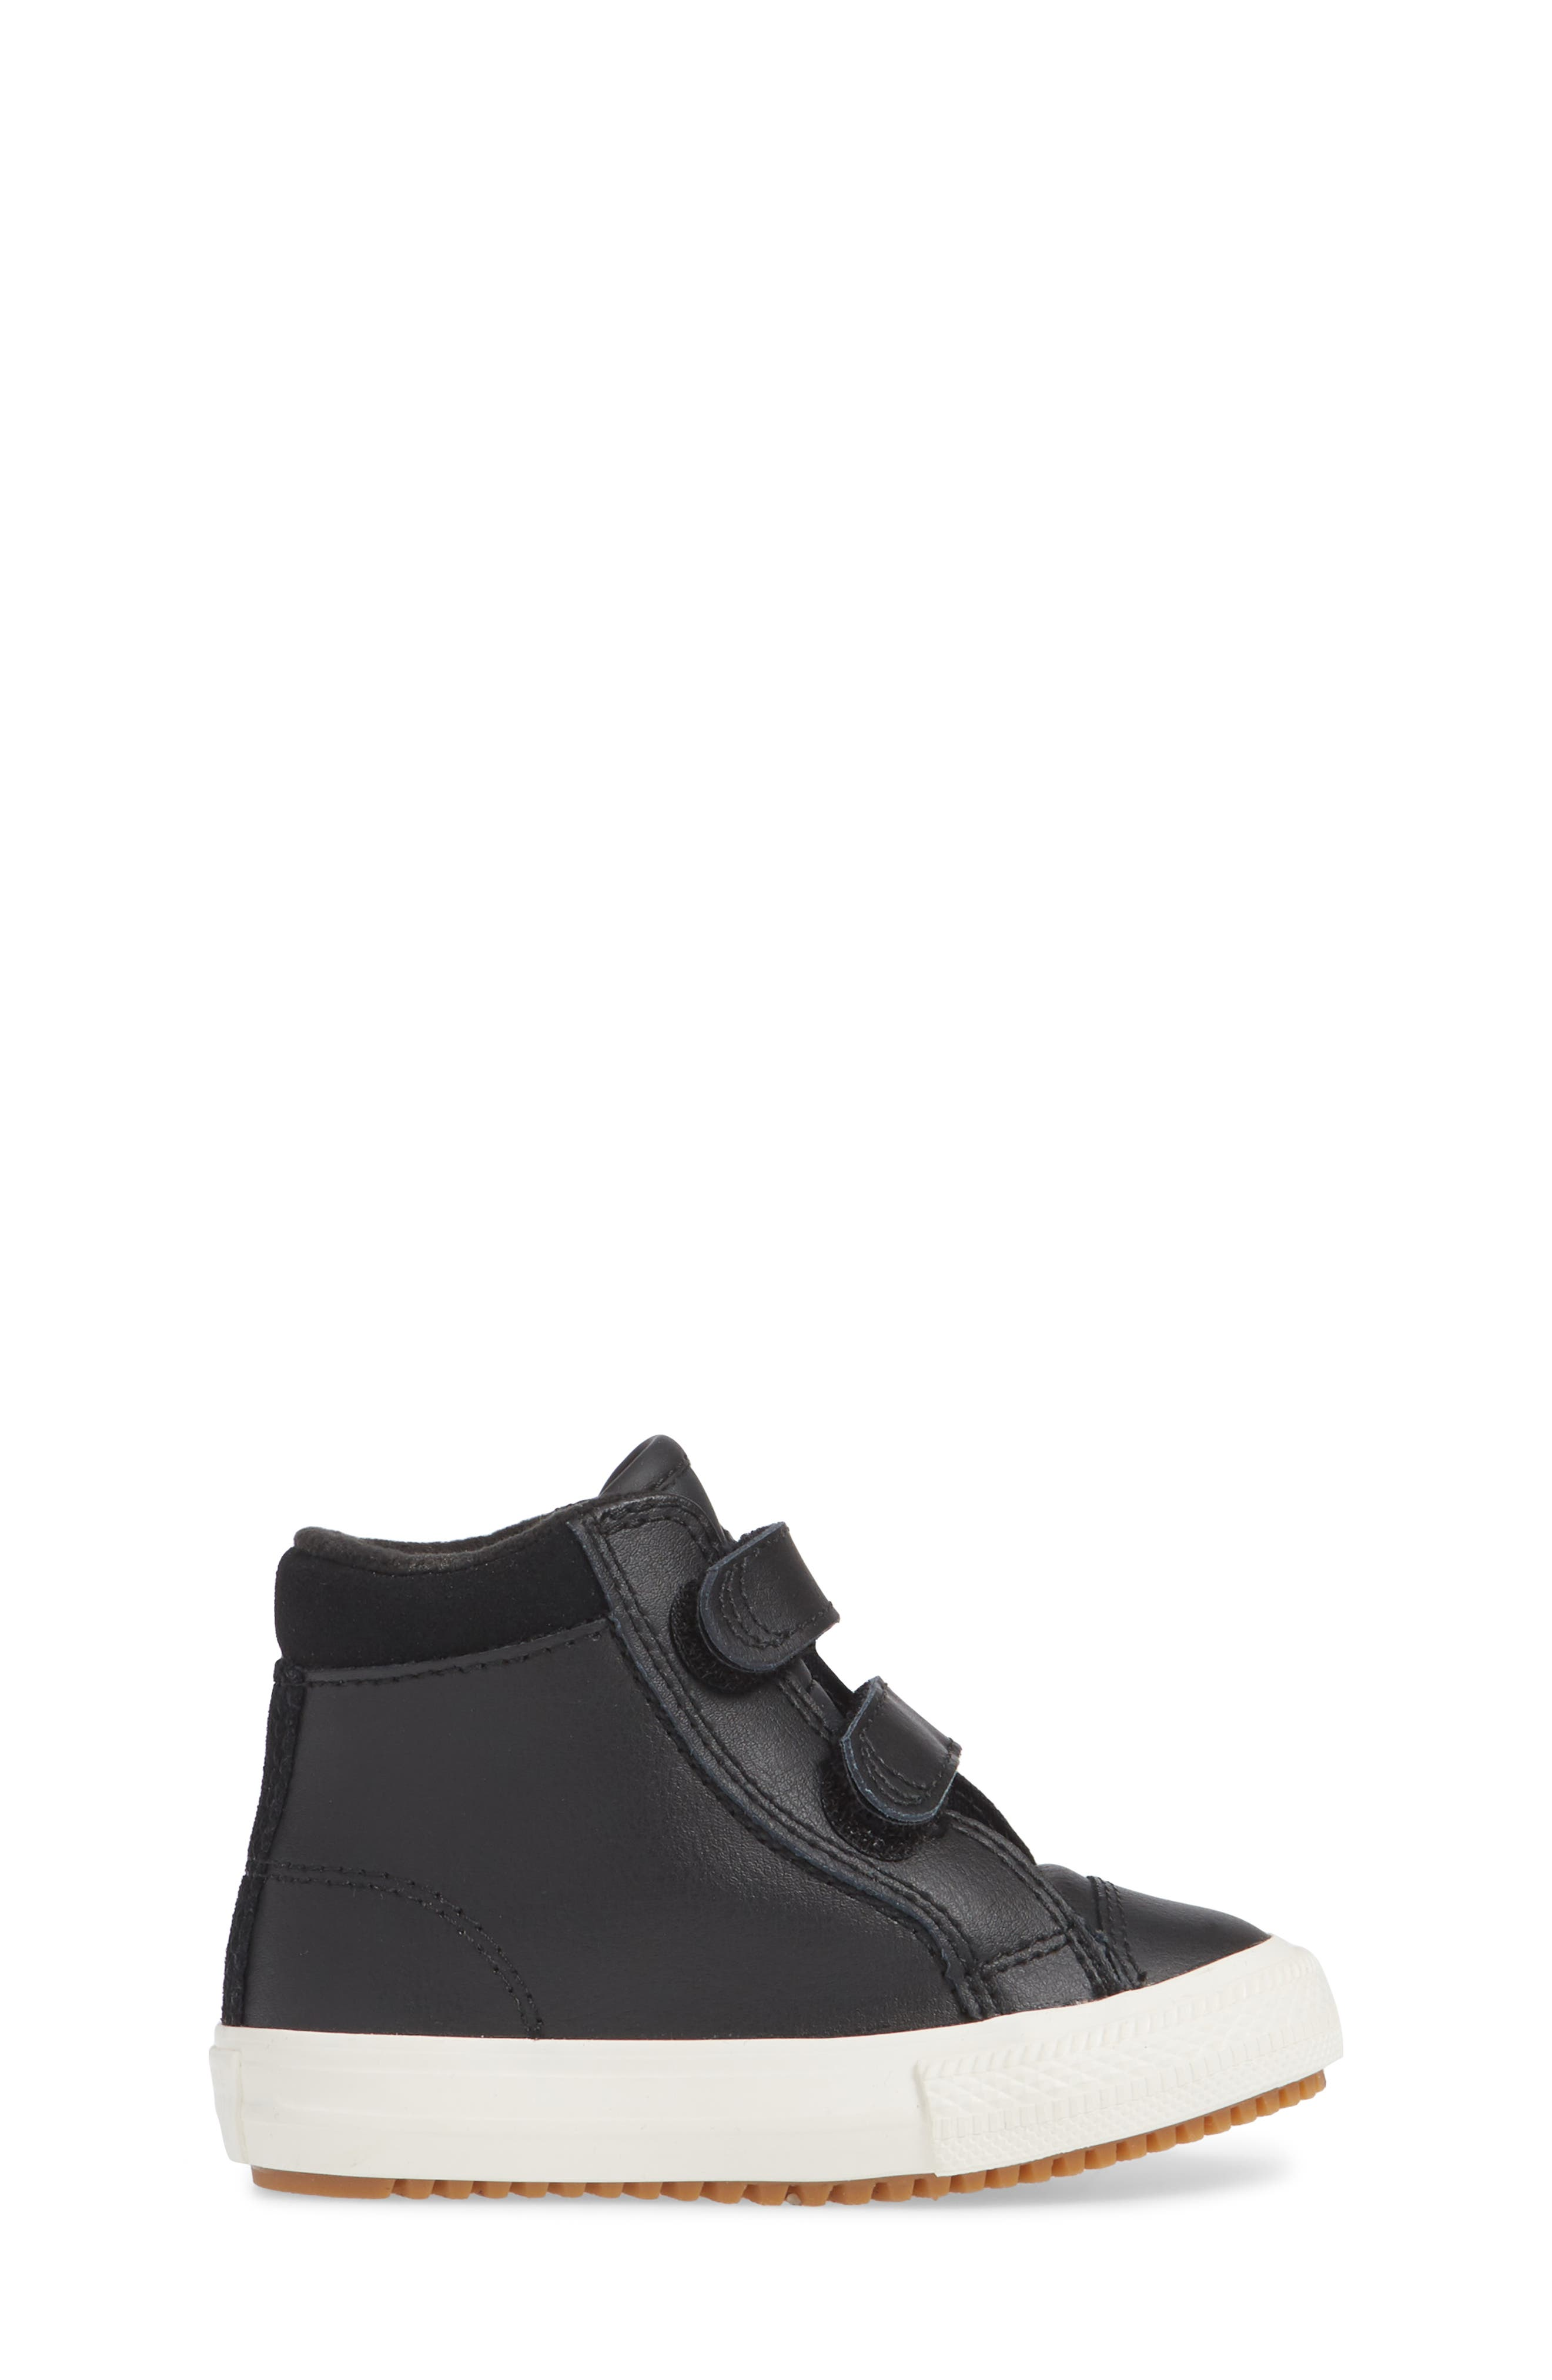 Chuck Taylor<sup>®</sup> All Star<sup>®</sup> 2V Leather High TopSneaker,                             Alternate thumbnail 3, color,                             BLACK